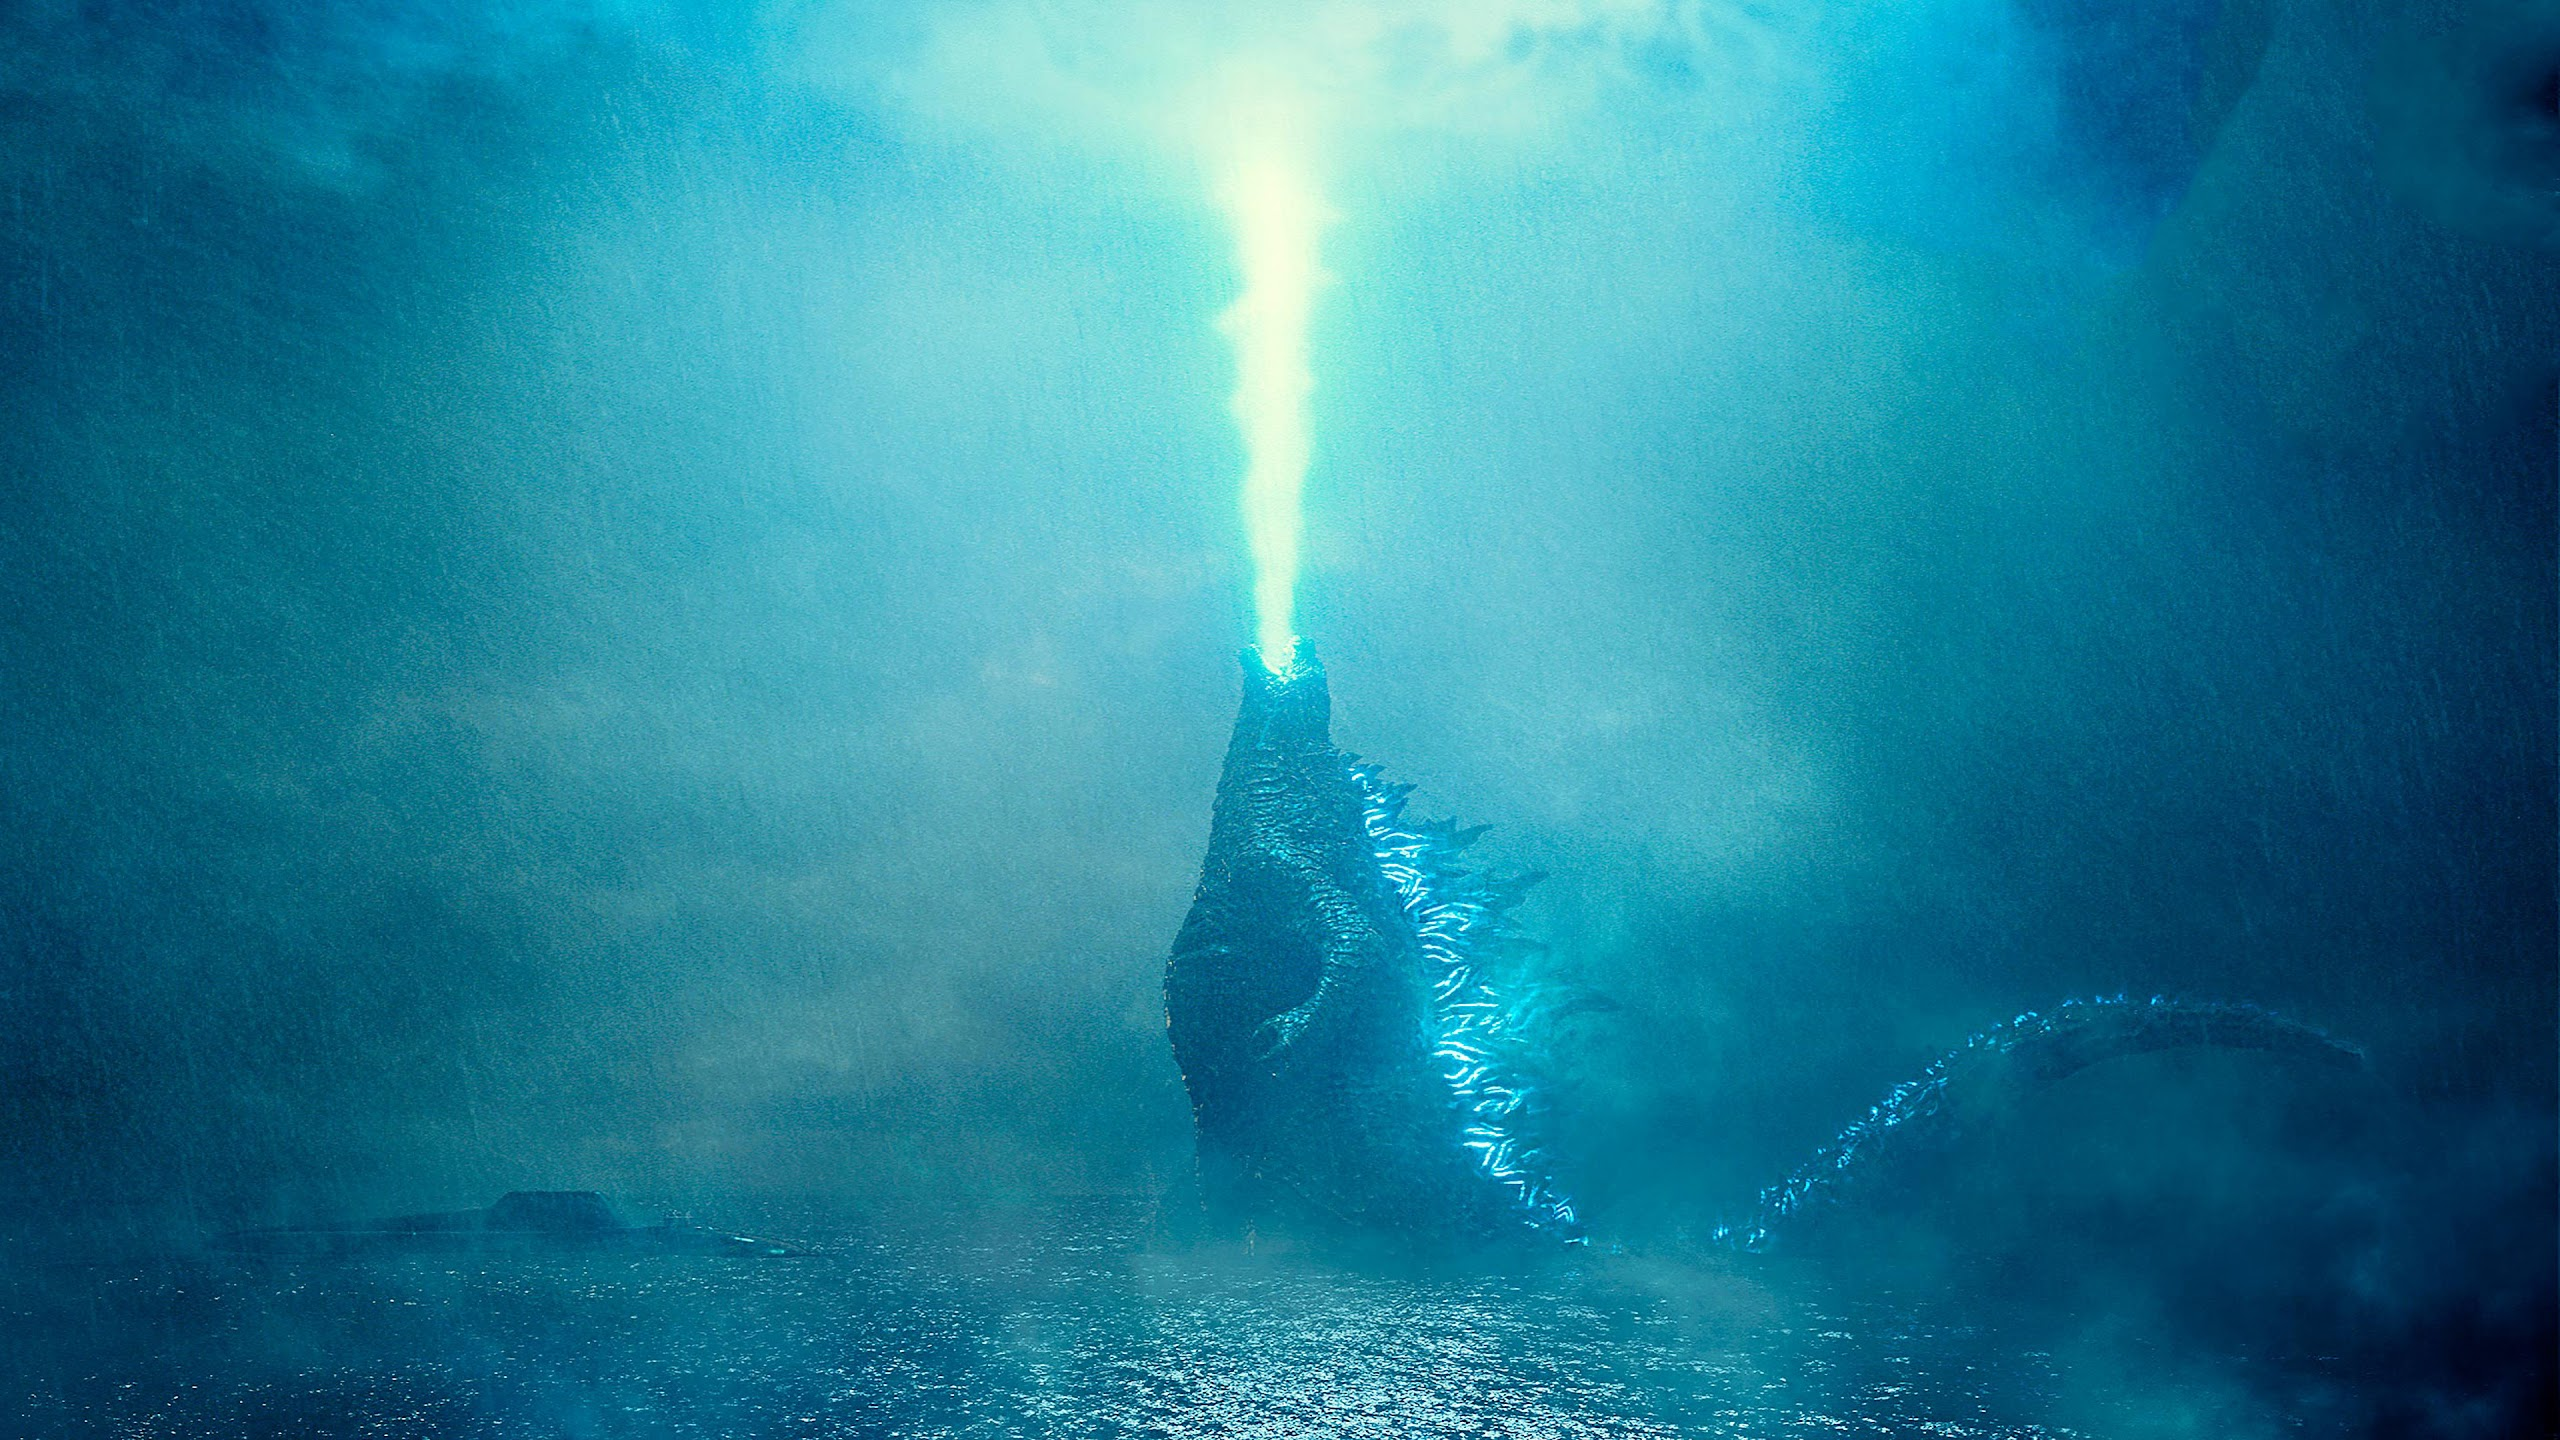 Godzilla King Of The Monsters 4k Wallpaper 8